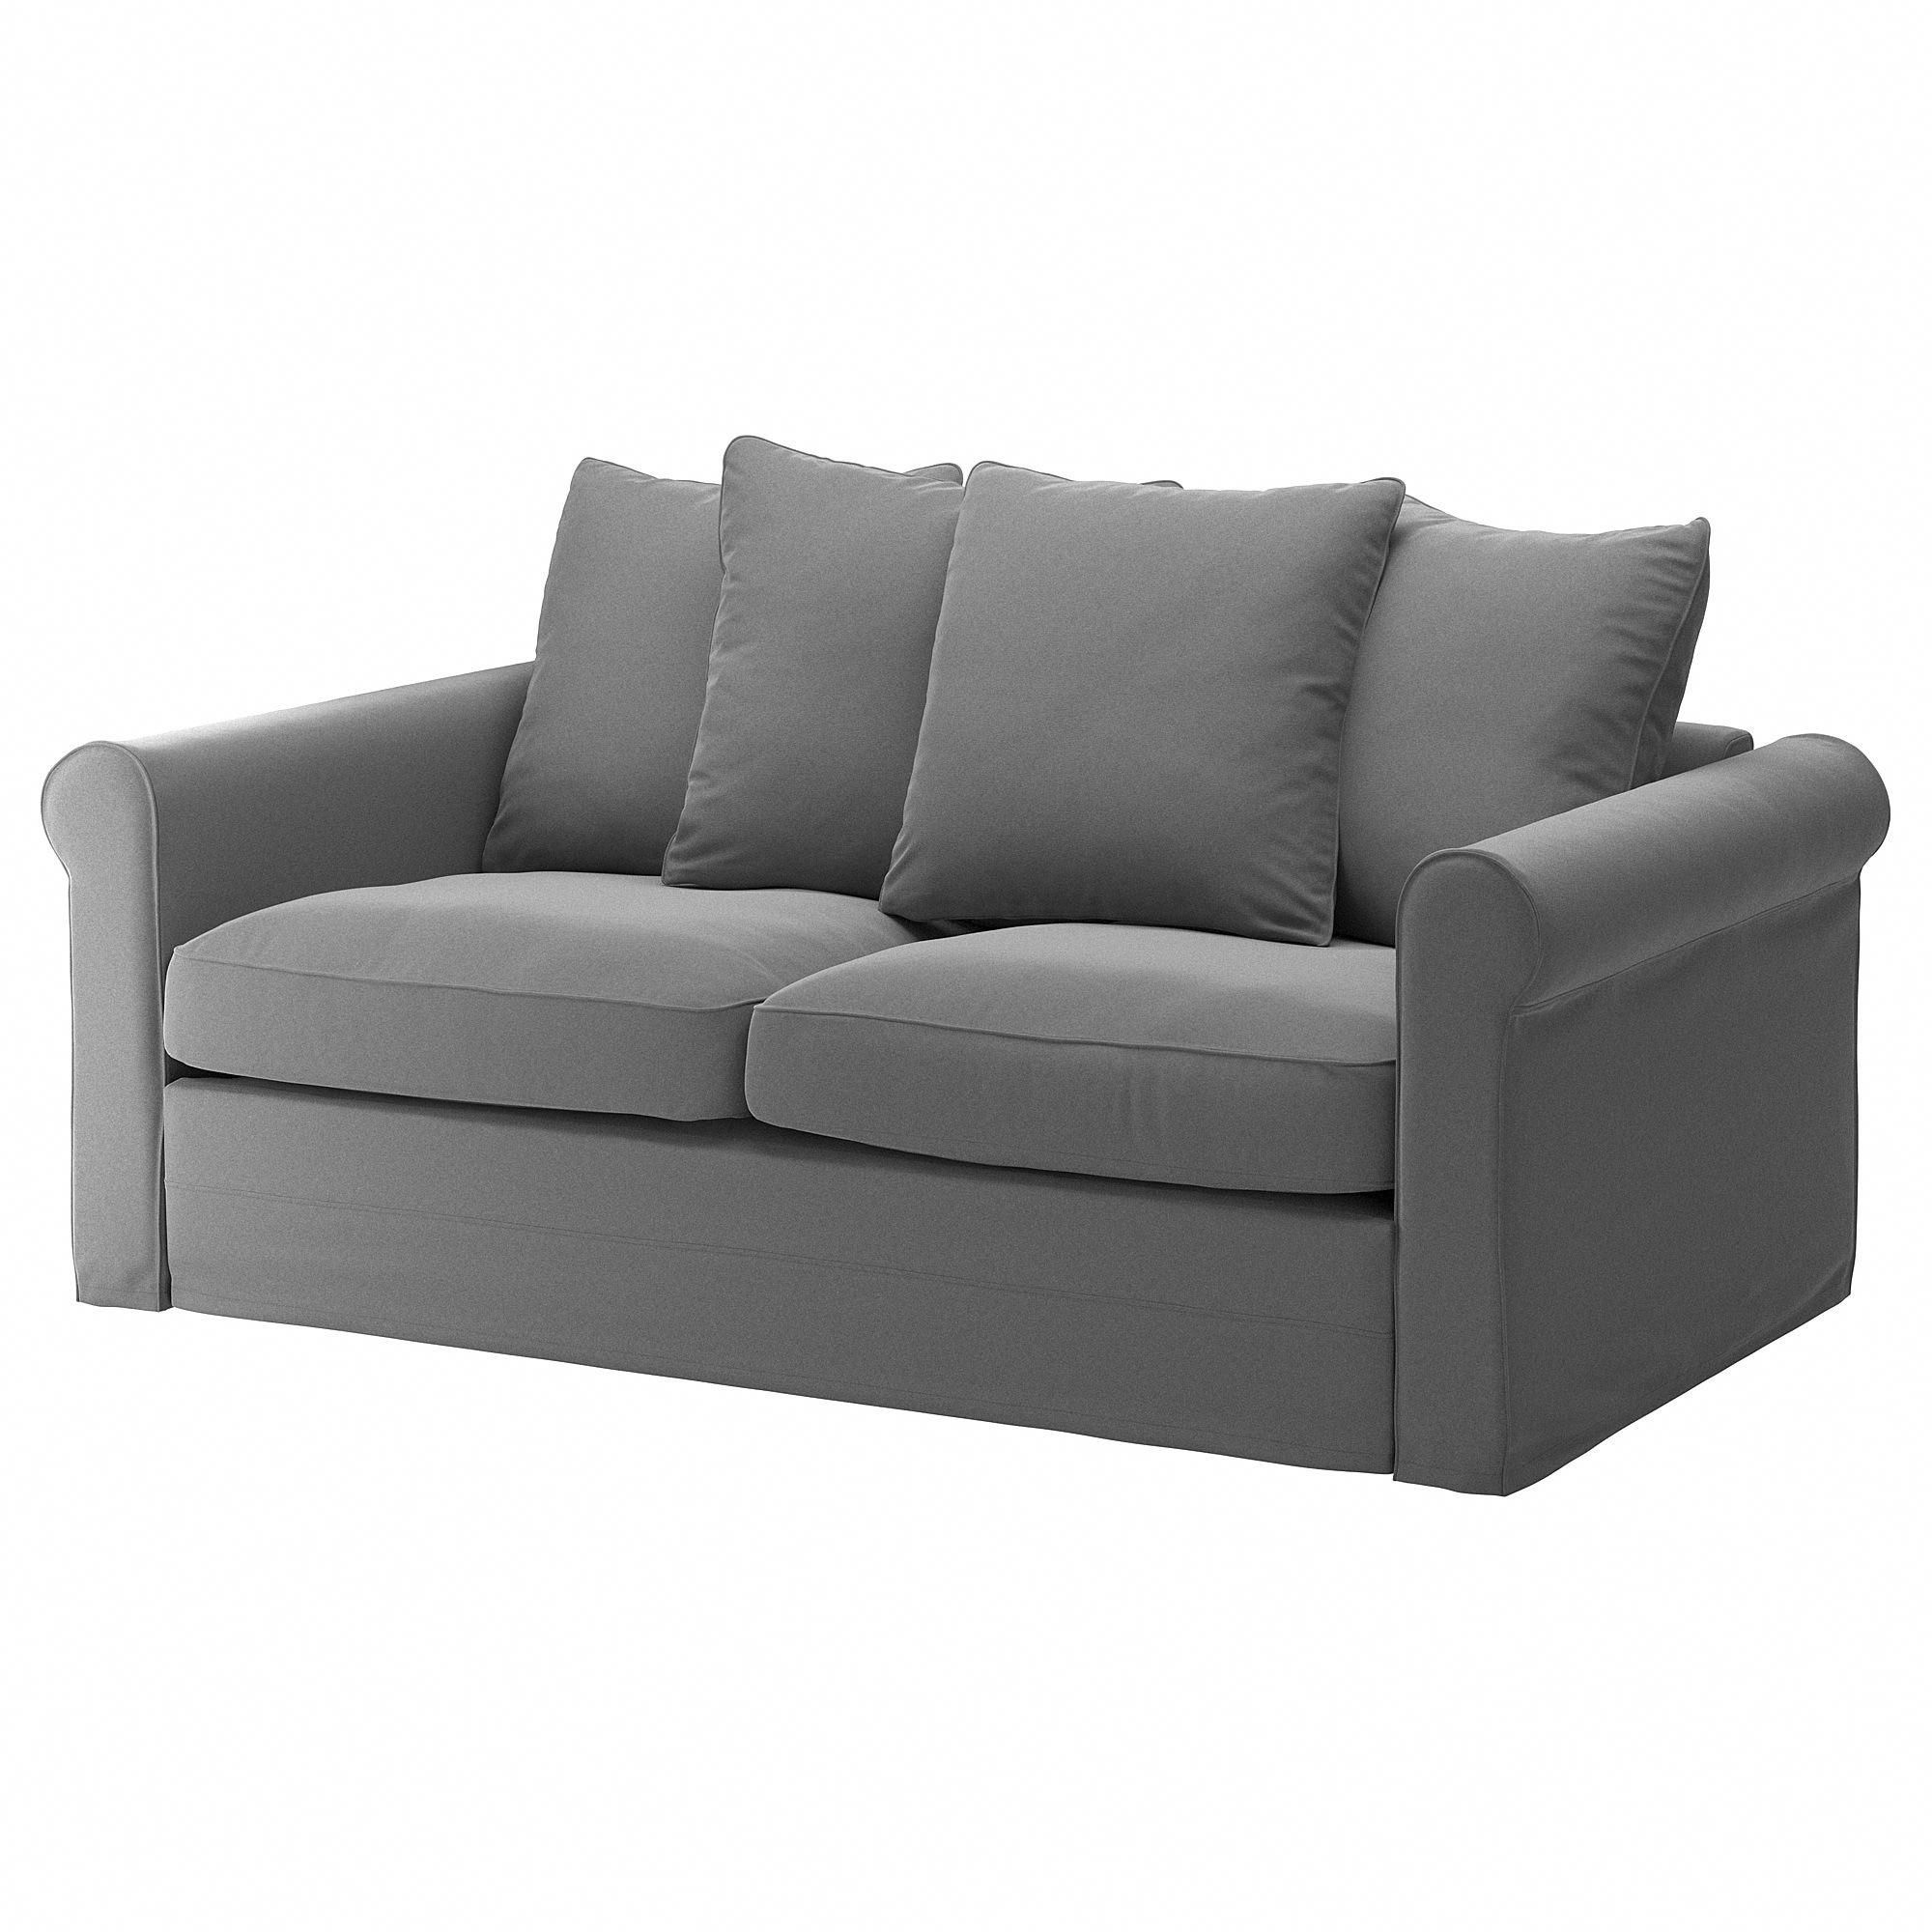 Marvelous Sleeper Sofa Repair Kit Creativecarmelina Interior Chair Design Creativecarmelinacom